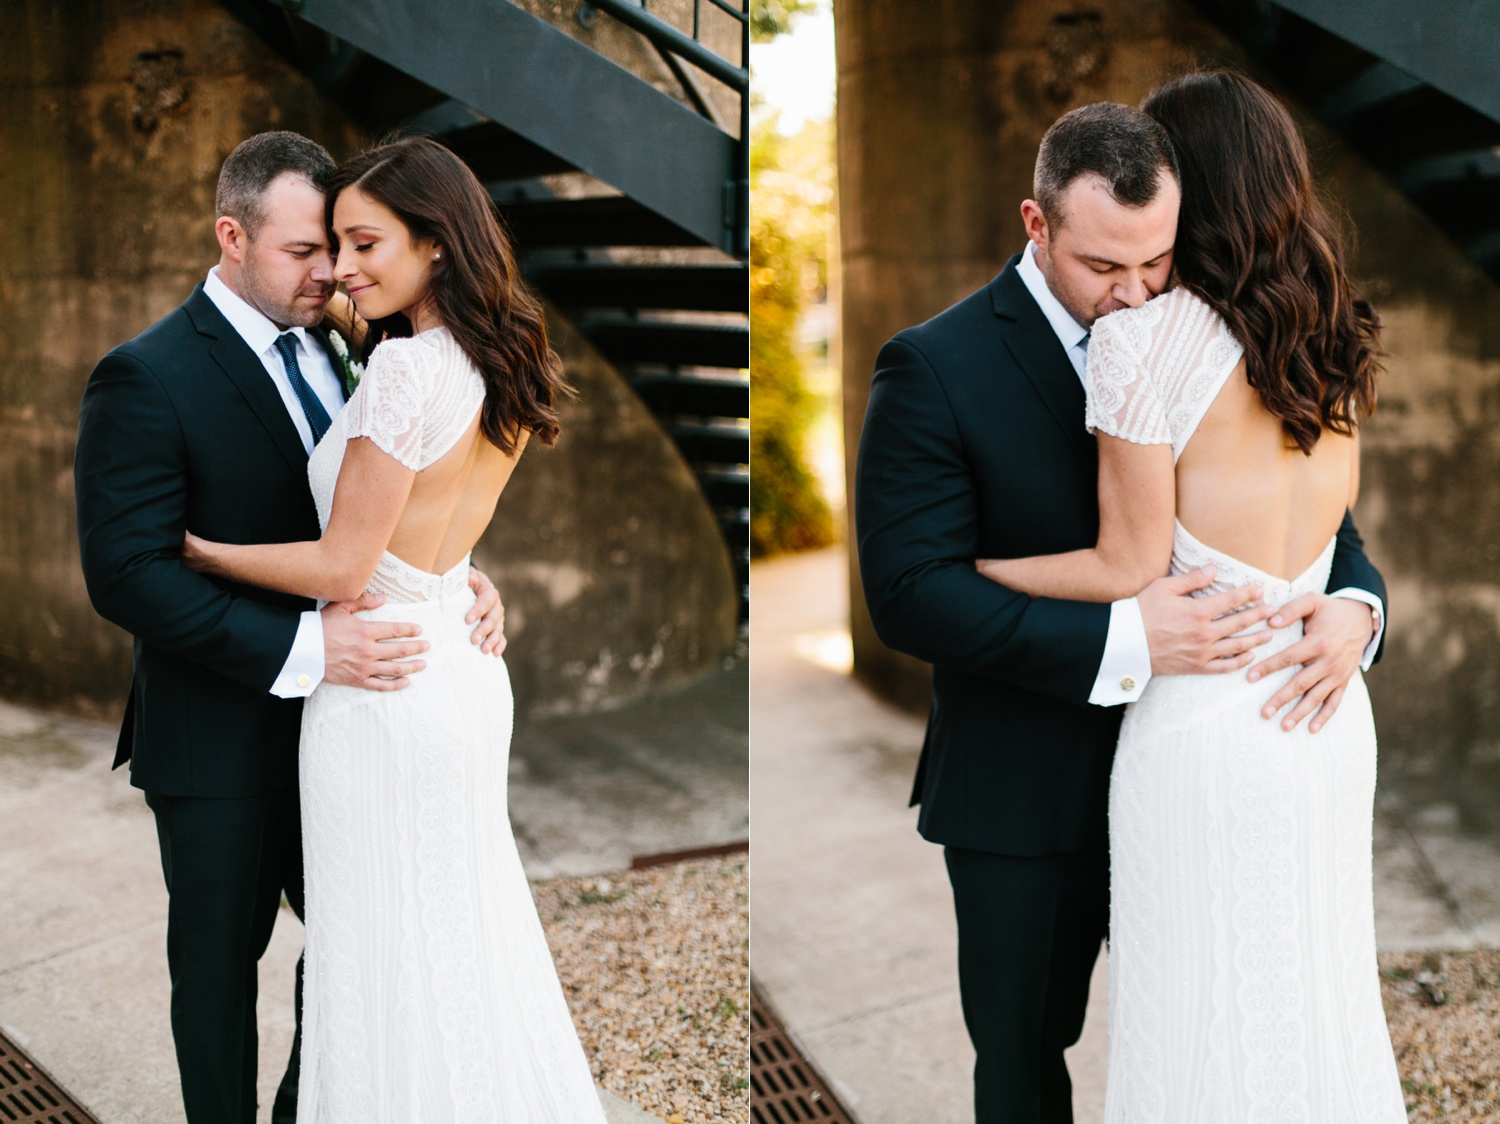 Kadee + Tyler | a raw, emotional wedding at the Filter Building on White Rock Lake in Dallas, TX by North Texas Wedding Photographer, Rachel Meagan Photography 086